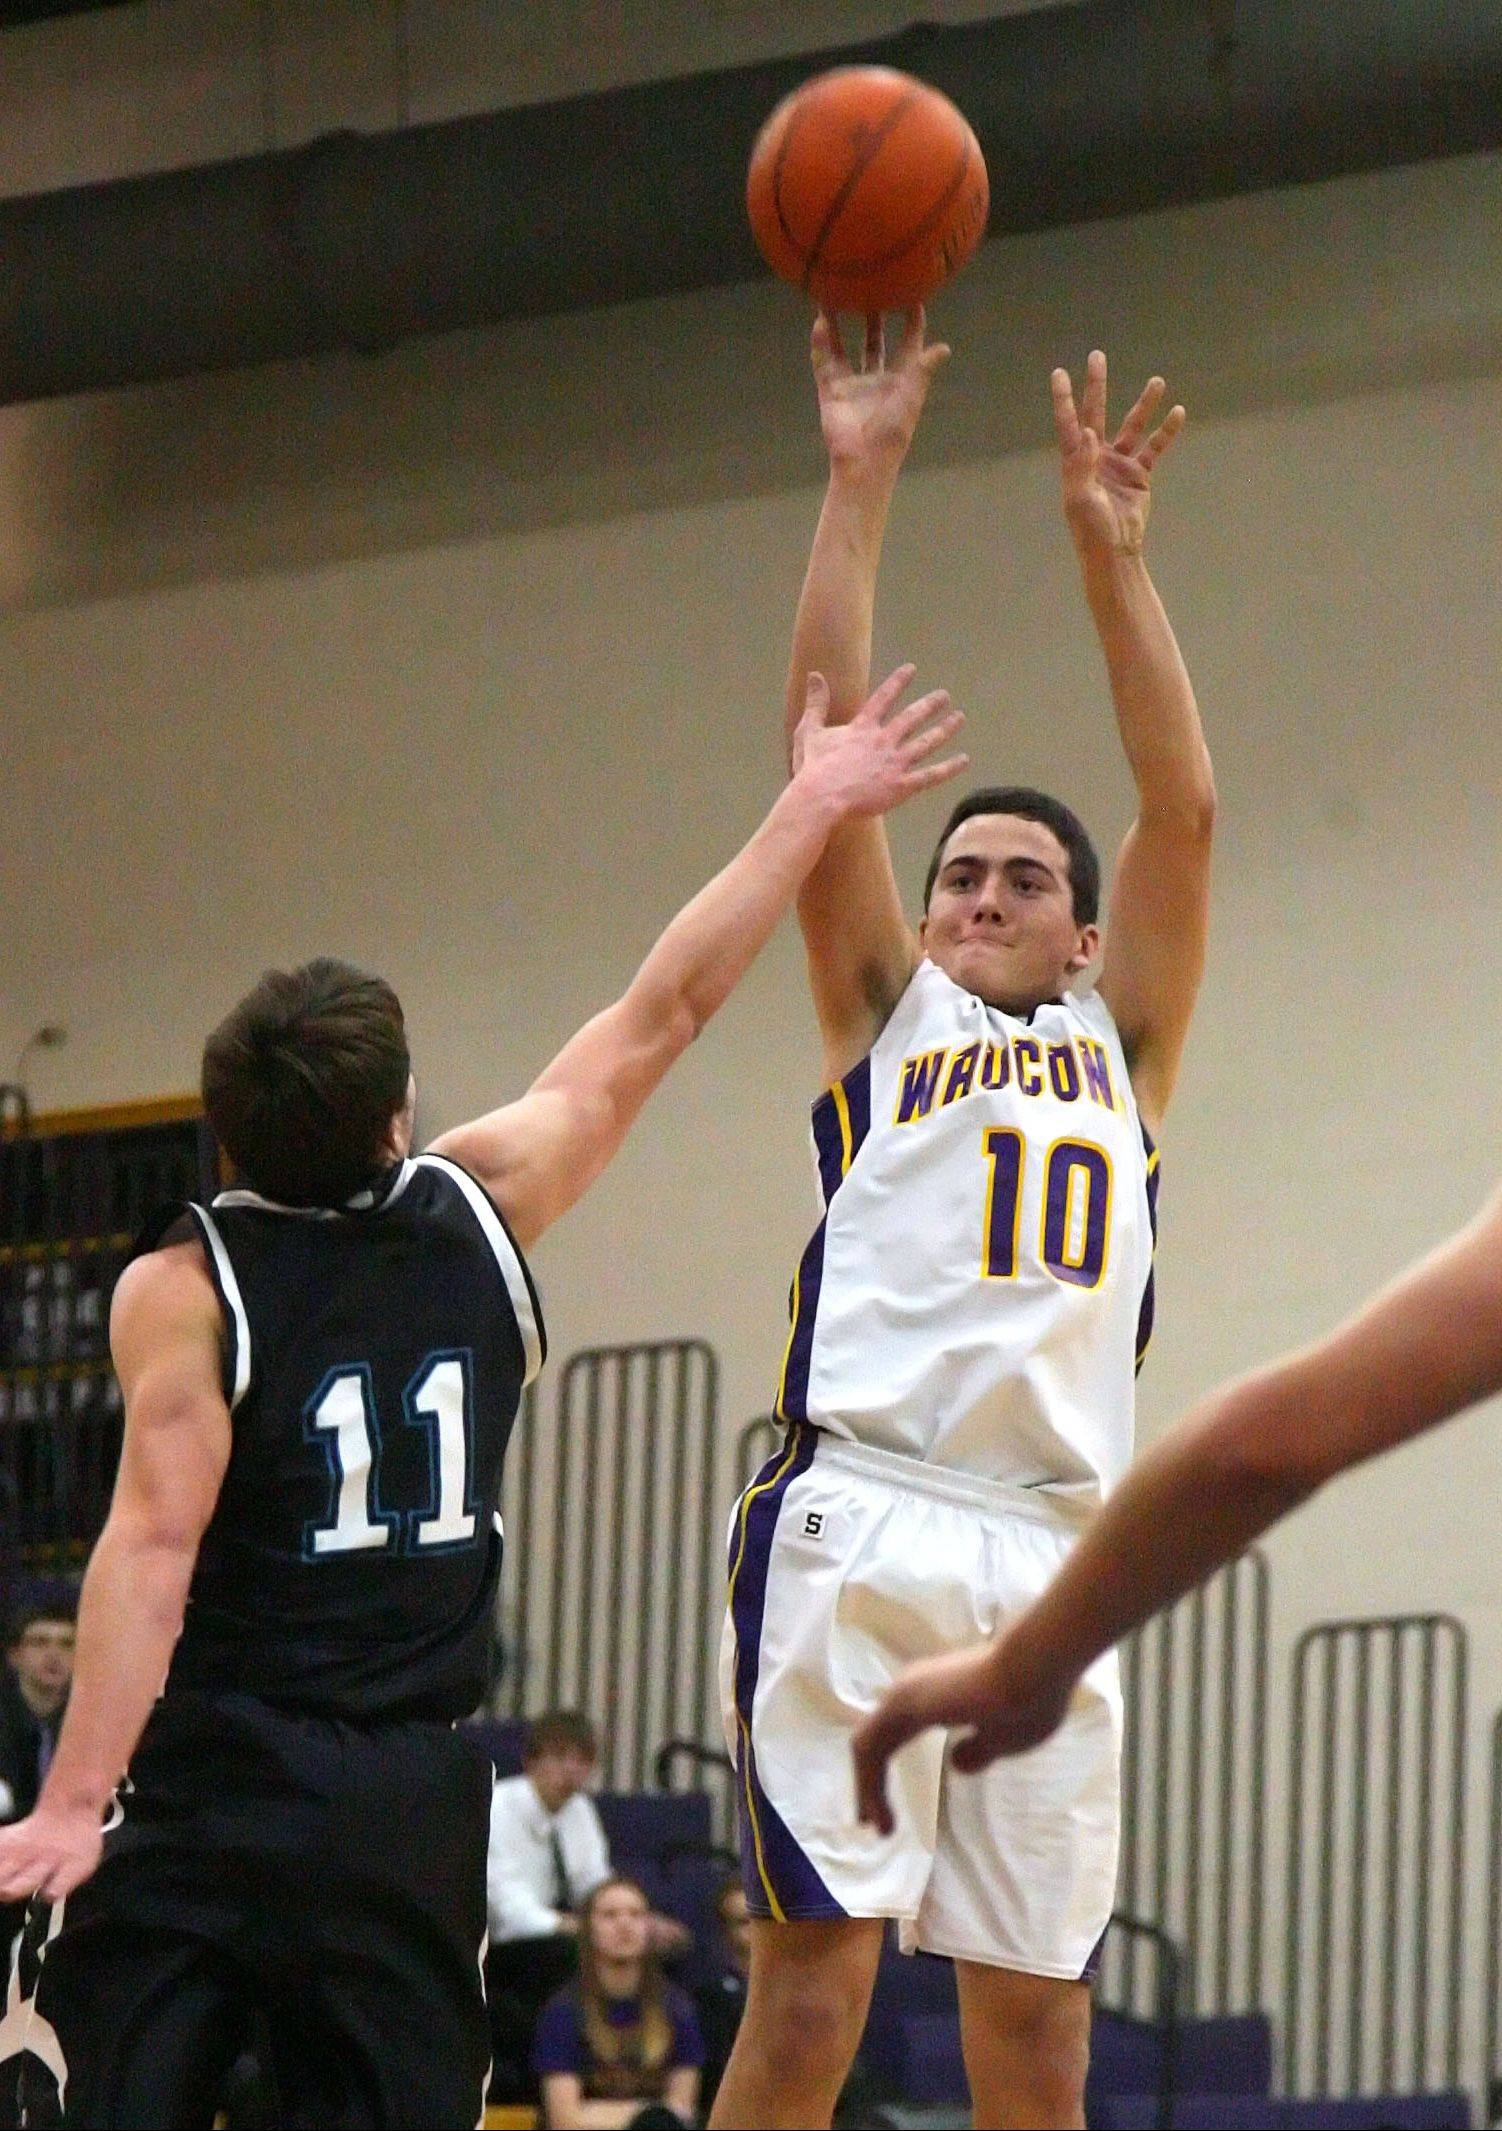 Wauconda's Austin Swenson, right, shoots over Woodstock North's Keith Blomberg on Monday night at Wauconda.